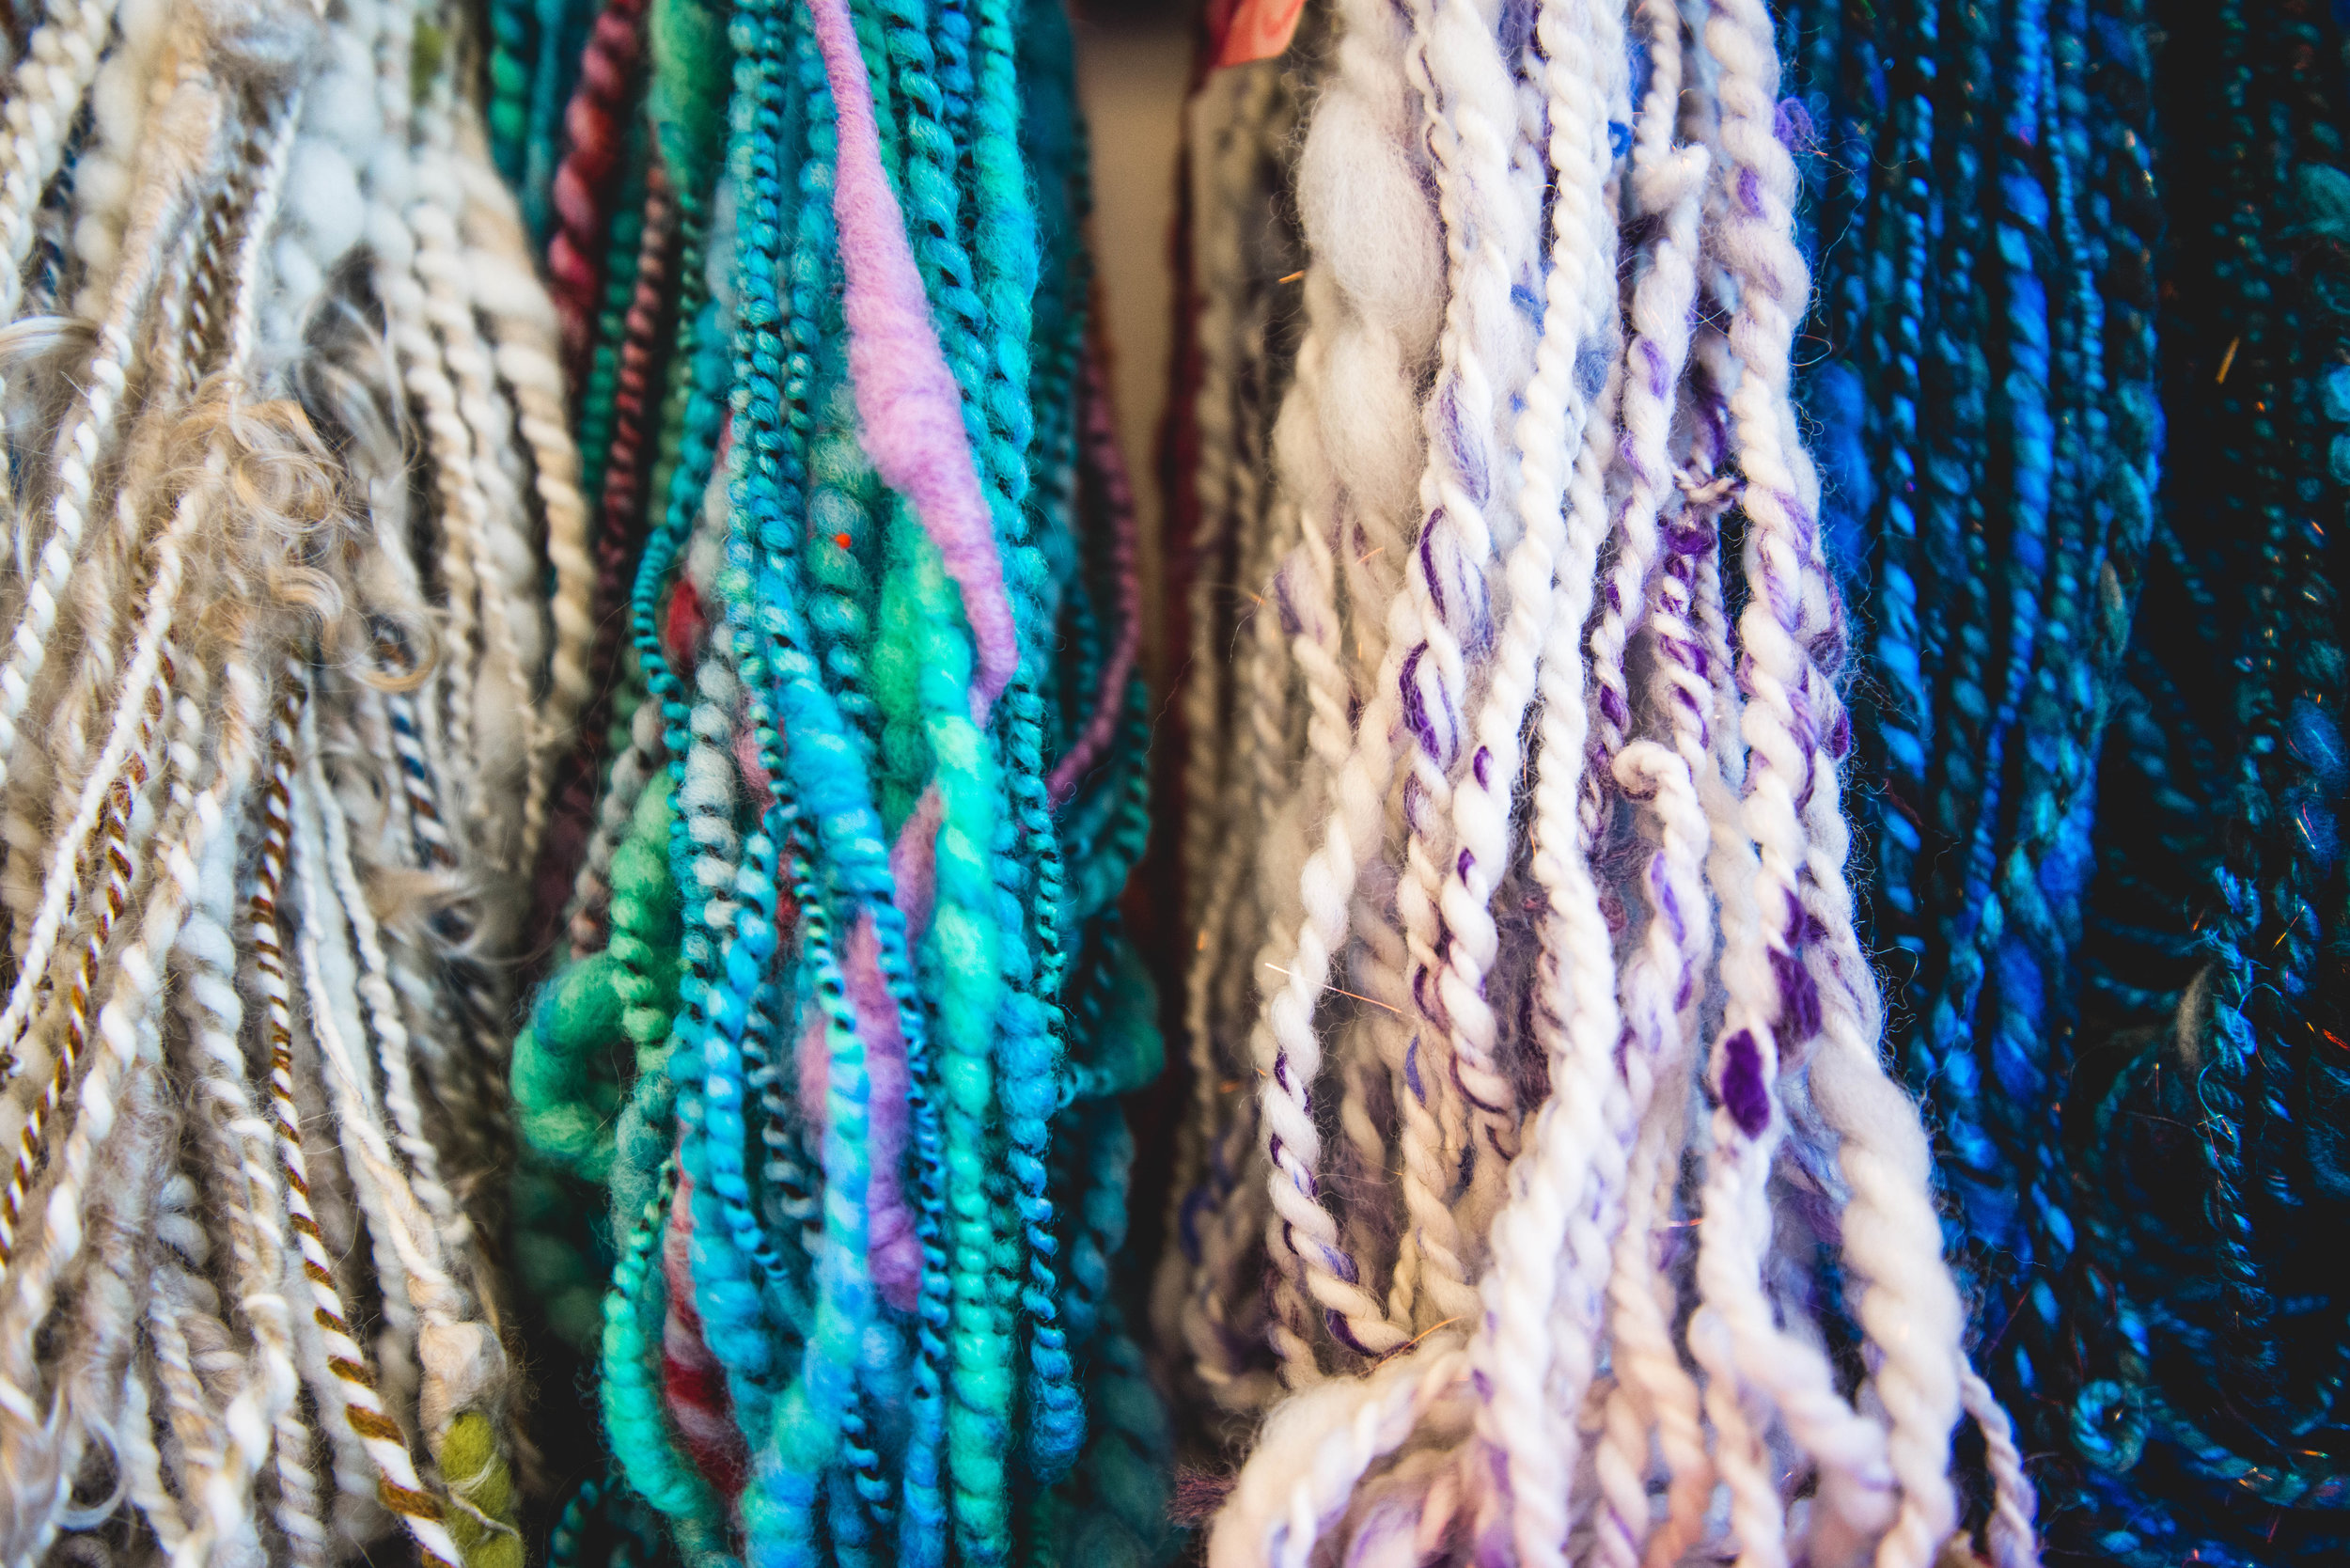 Hand Spun yarn necklaces